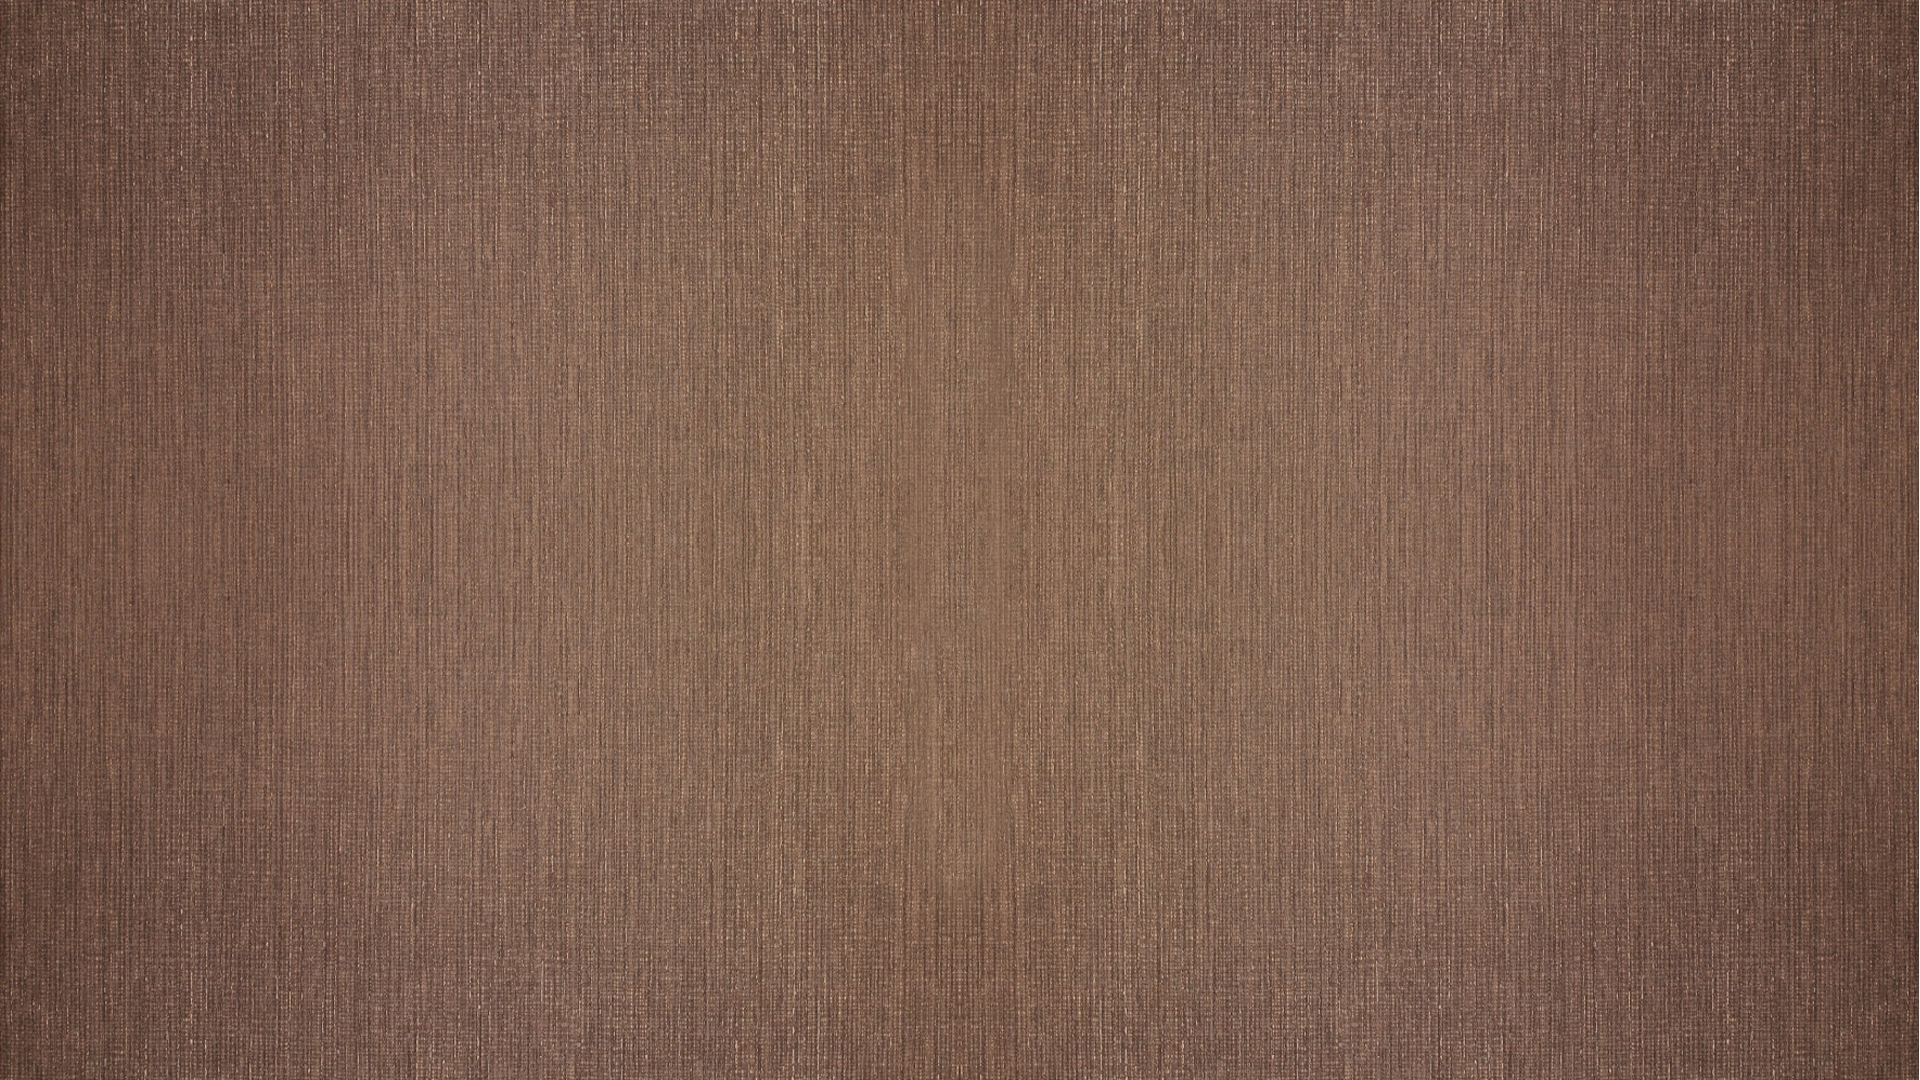 Get The Latest Surface Texture Brown News Pictures And Videos Learn All About From Wallpapers4uorg Your Wallpaper